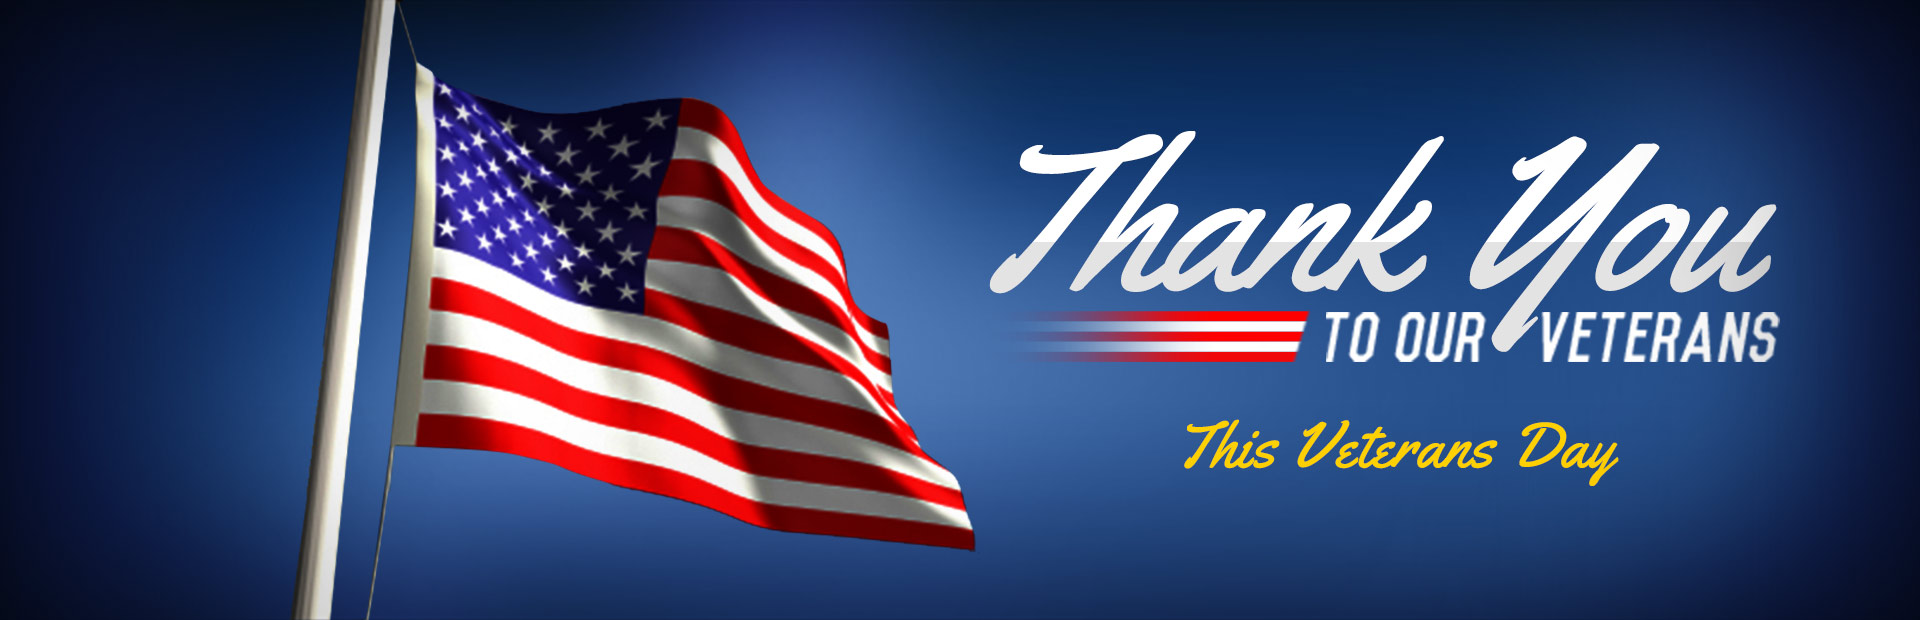 Thank you to our veterans.